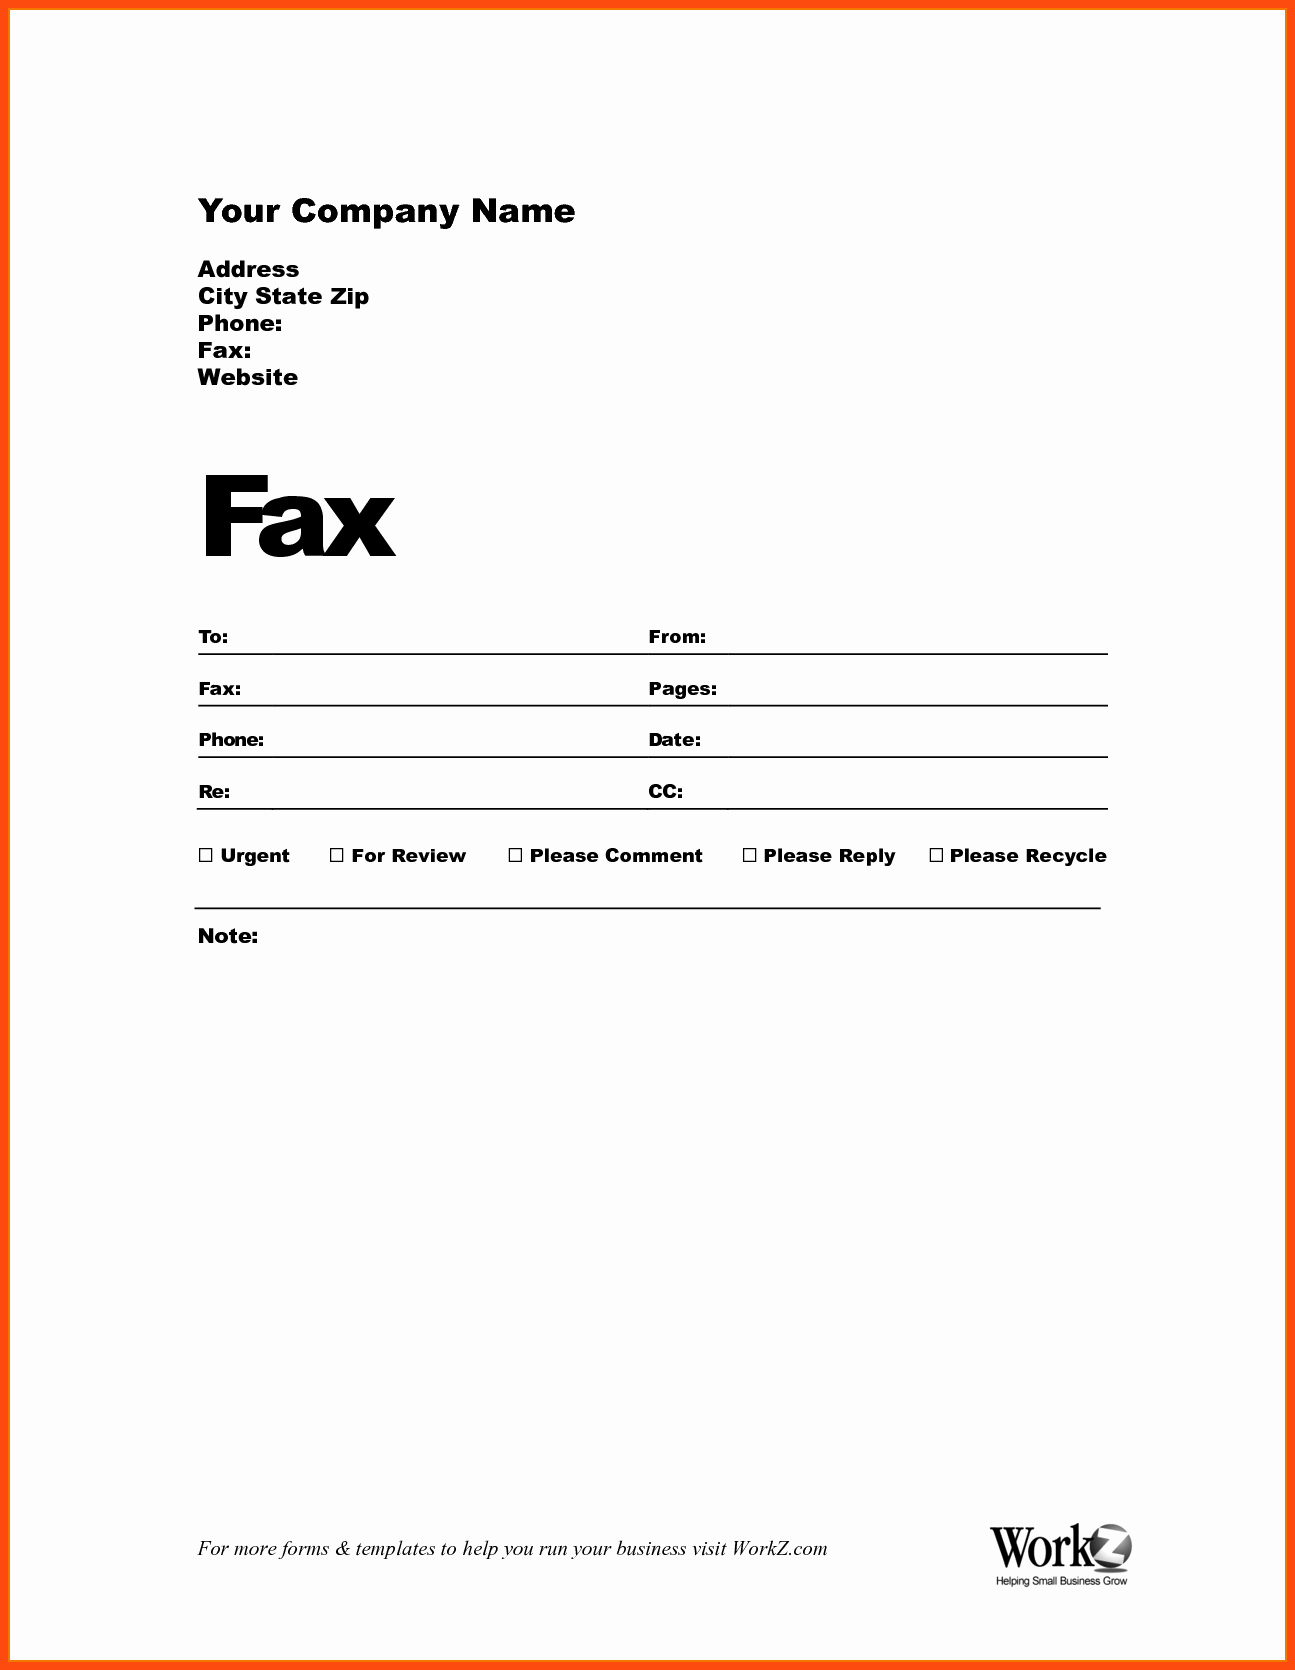 Sample Fax Cover Sheets Template Unique How to Fill Out A Fax Cover Sheet